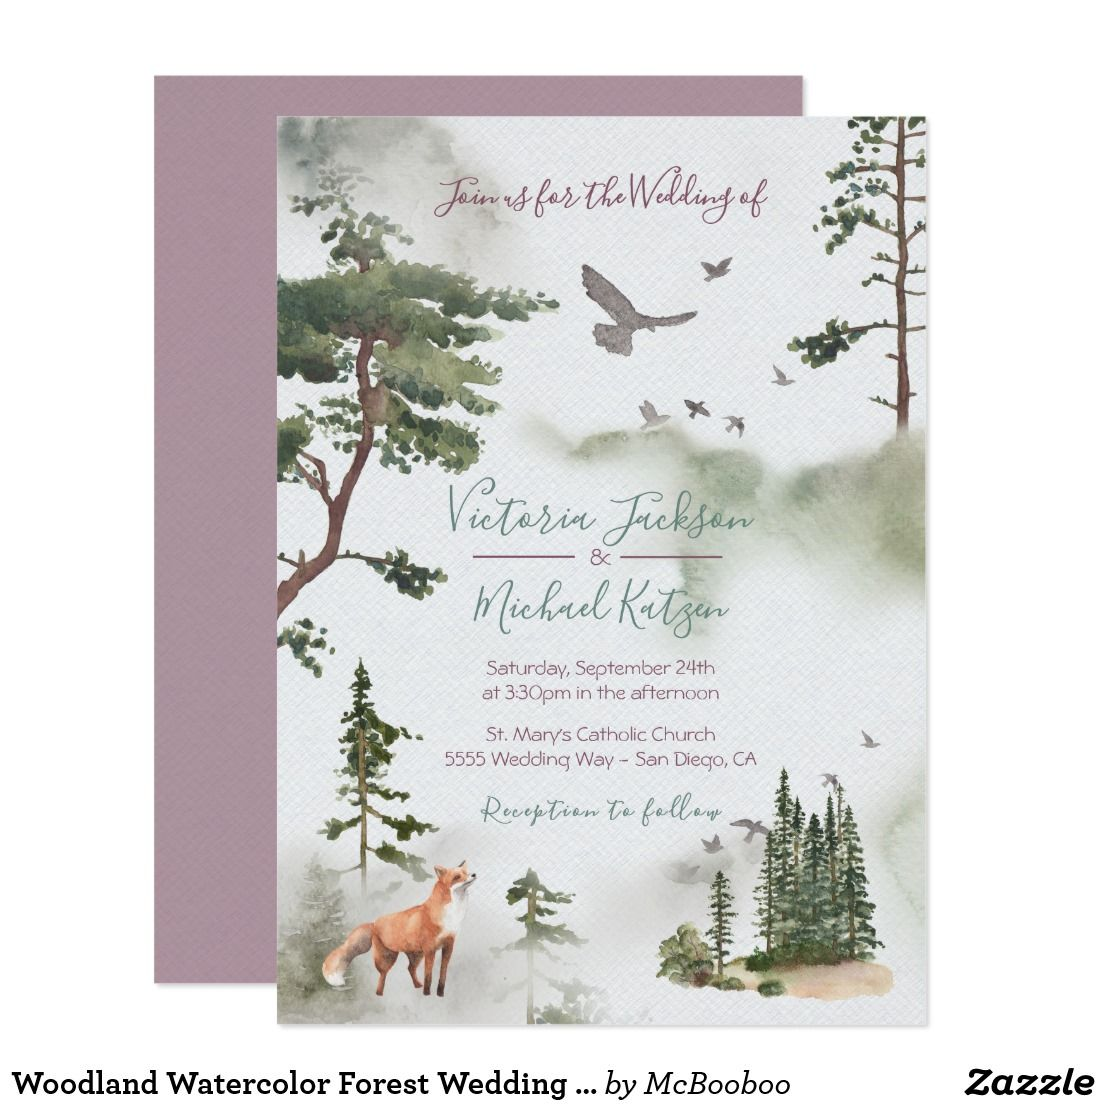 Woodland Watercolor Forest Wedding Invitations Zazzle Com In 2020 Forest Wedding Invitations Forest Wedding Wedding Invitations